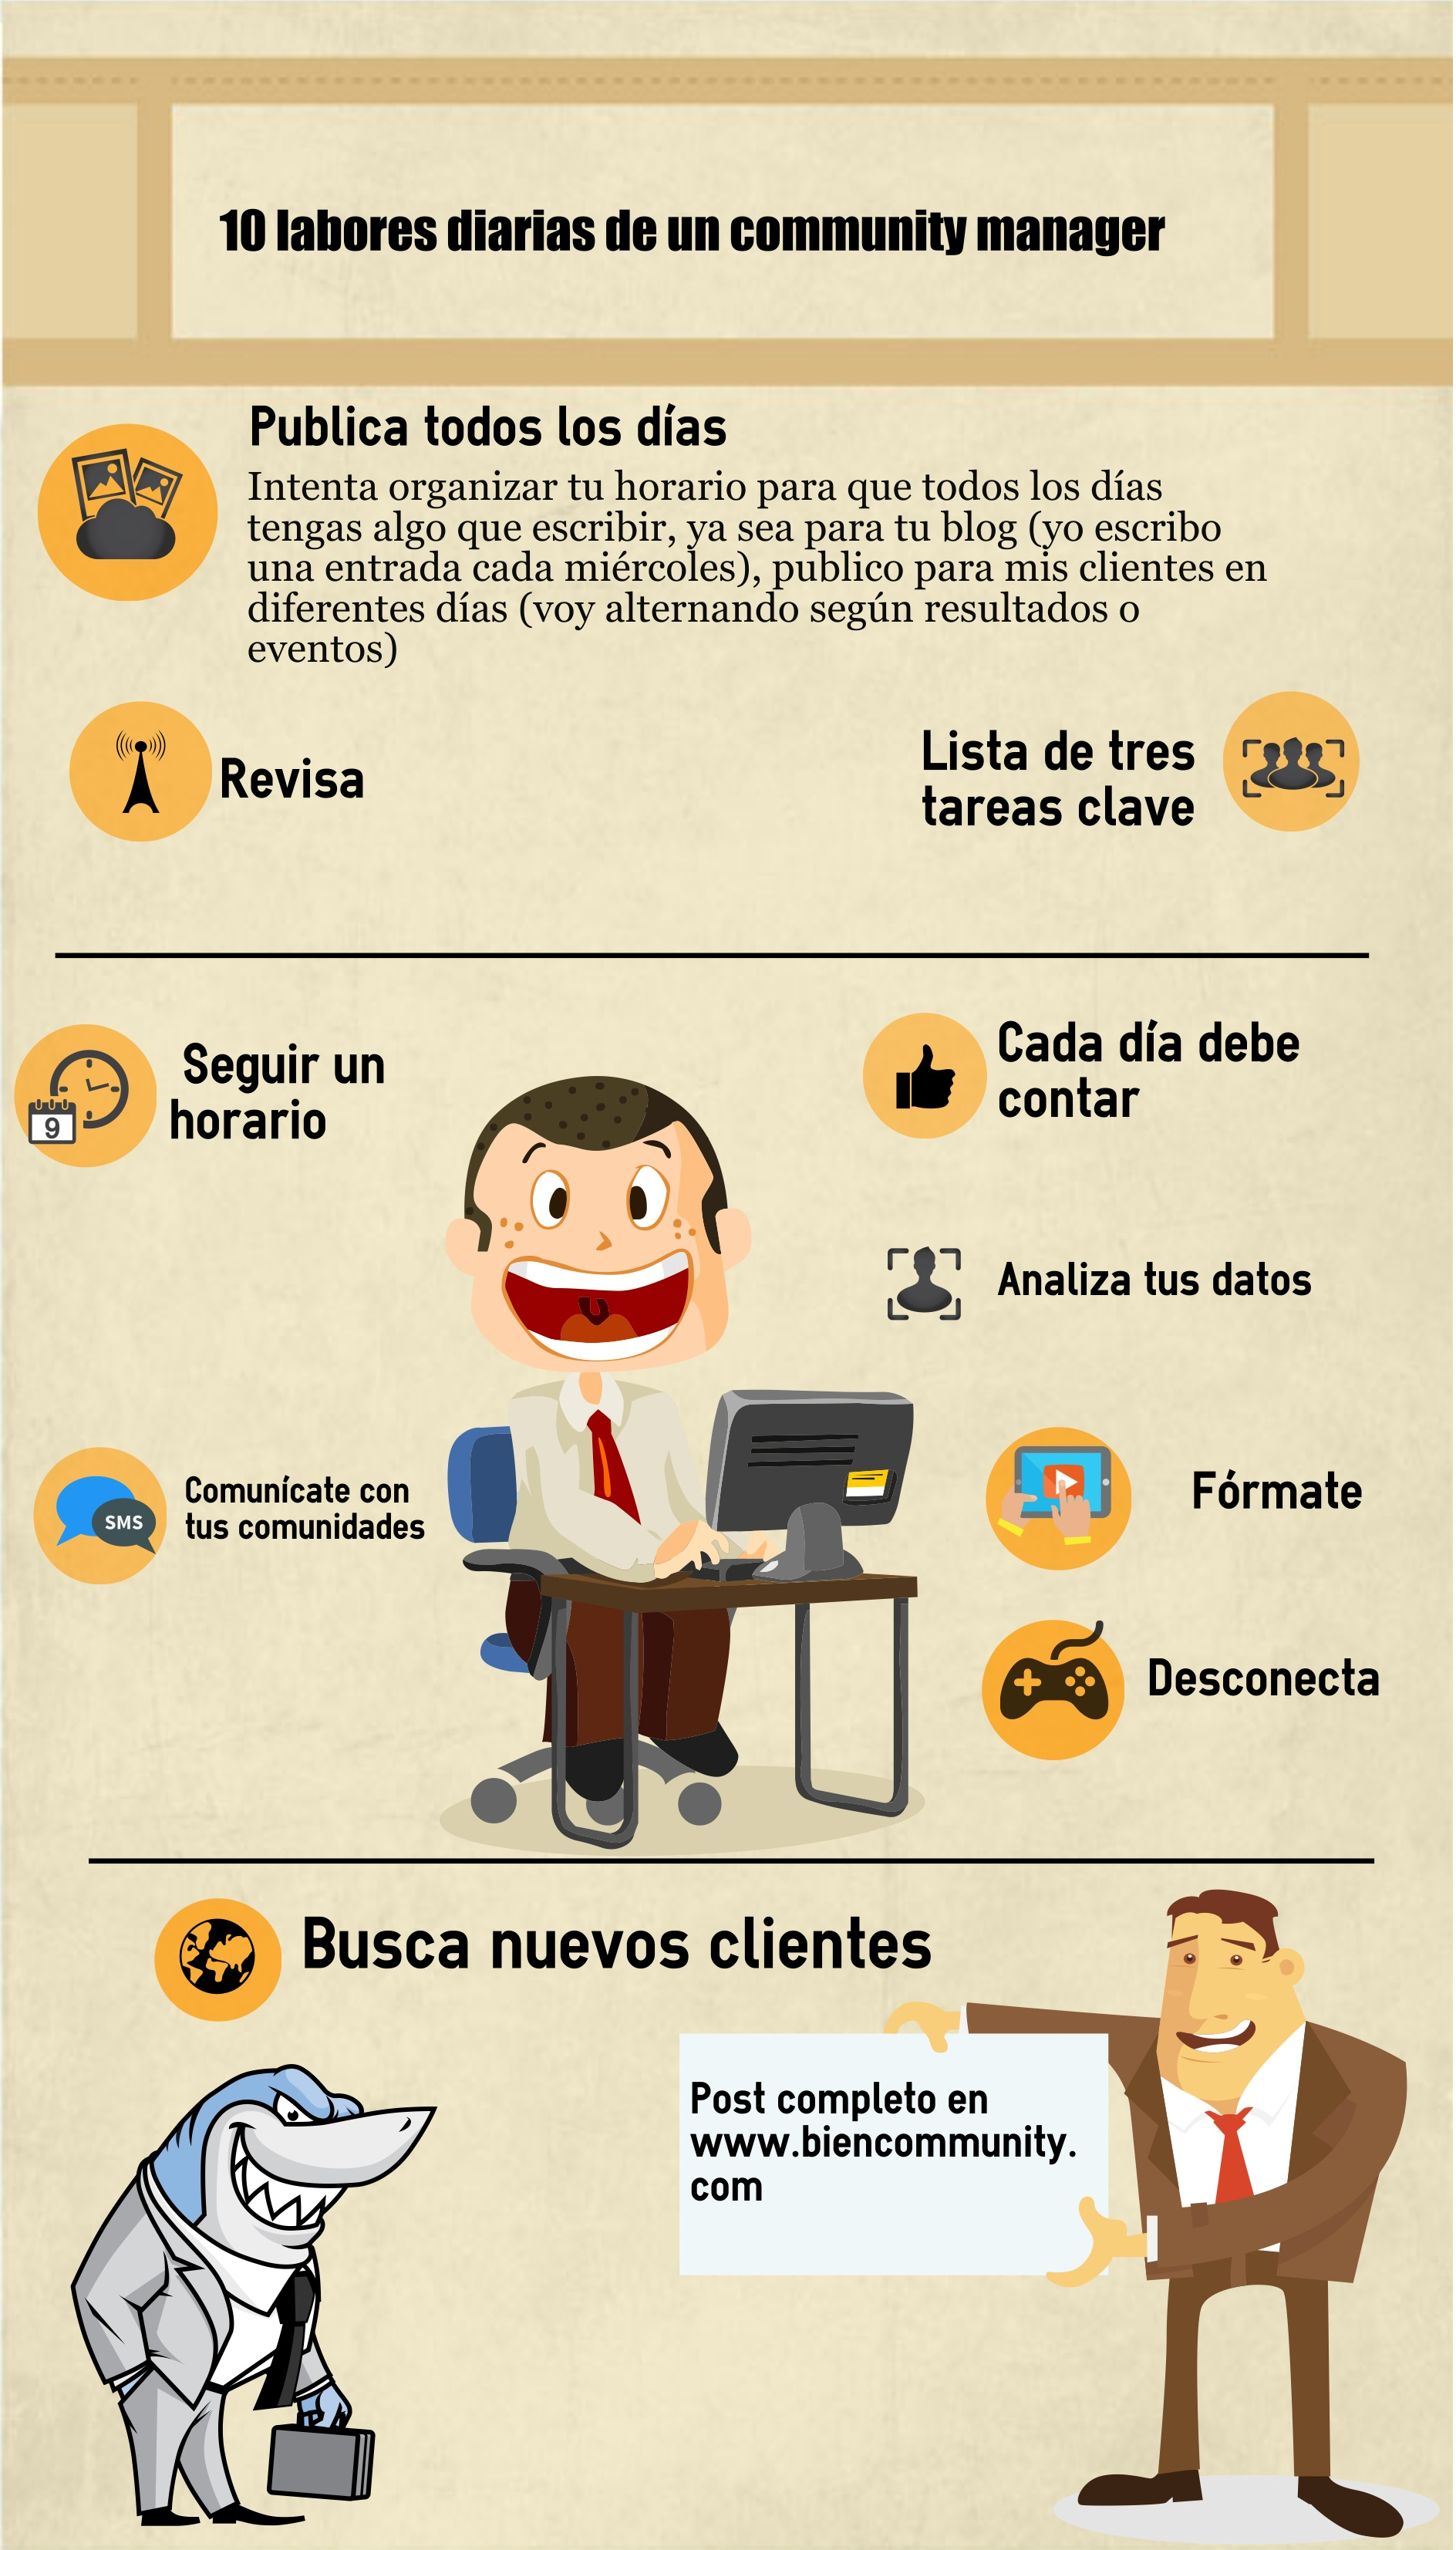 10 labores diarias de un community manager